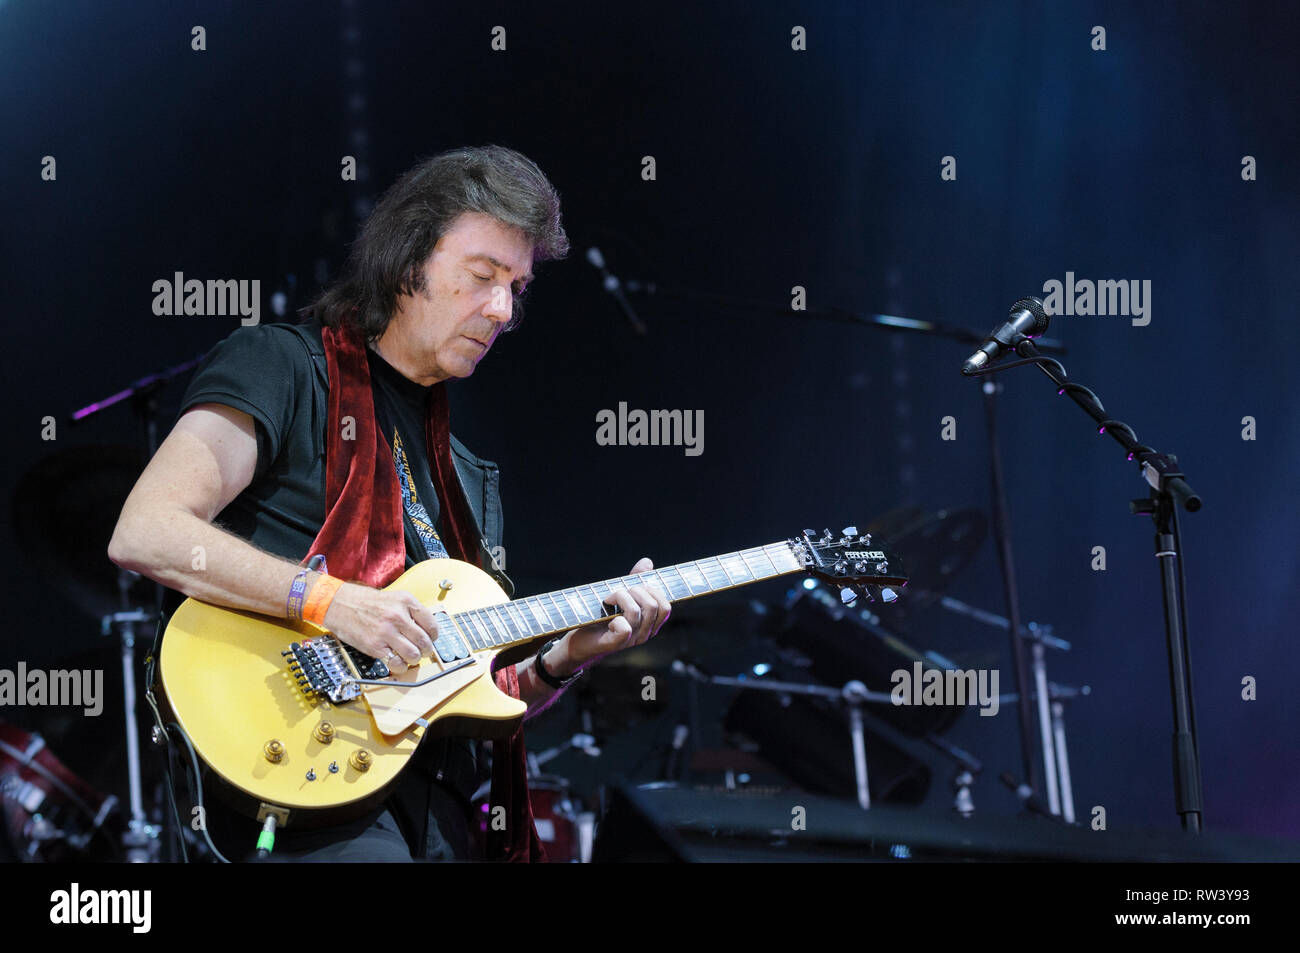 Steve Hackett performing at Fairport's Cropredy Convention, August 7, 2014, 2014 - Stock Image